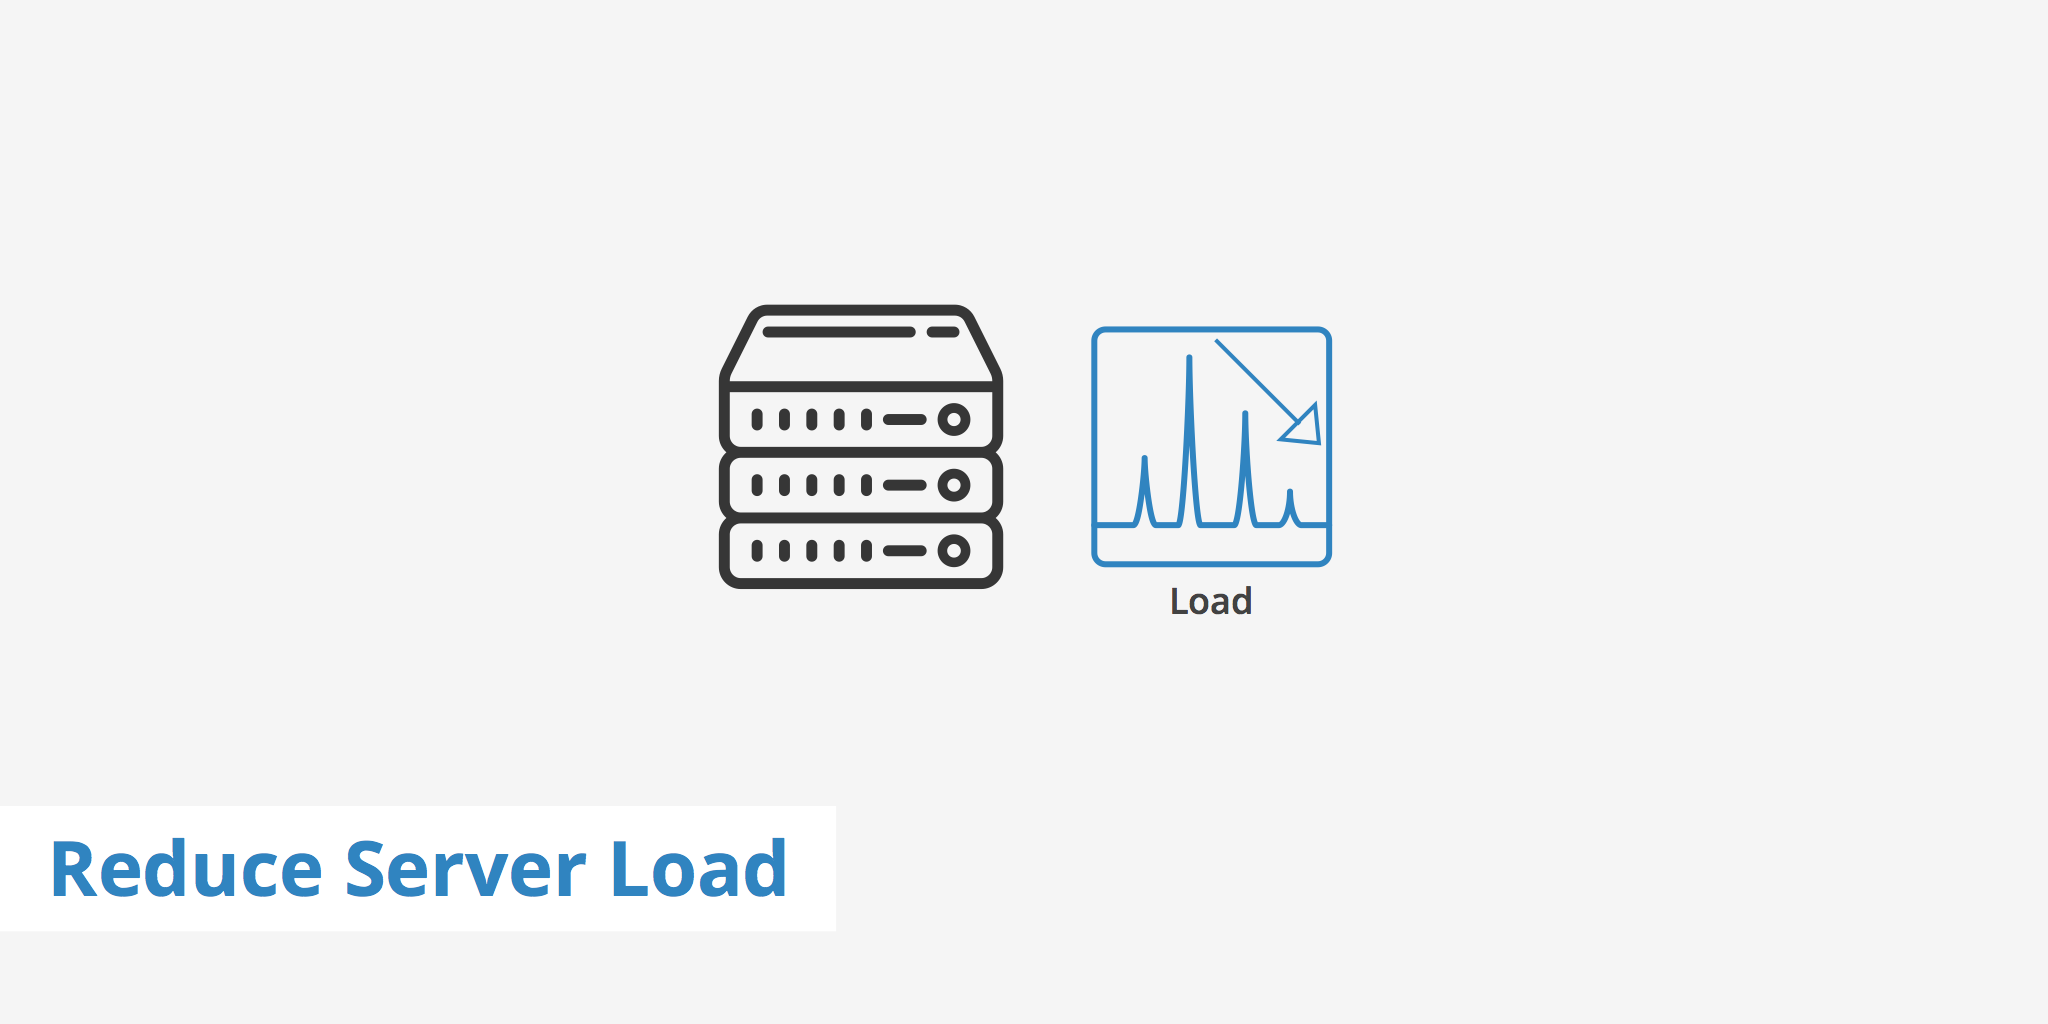 How to Reduce Server Load